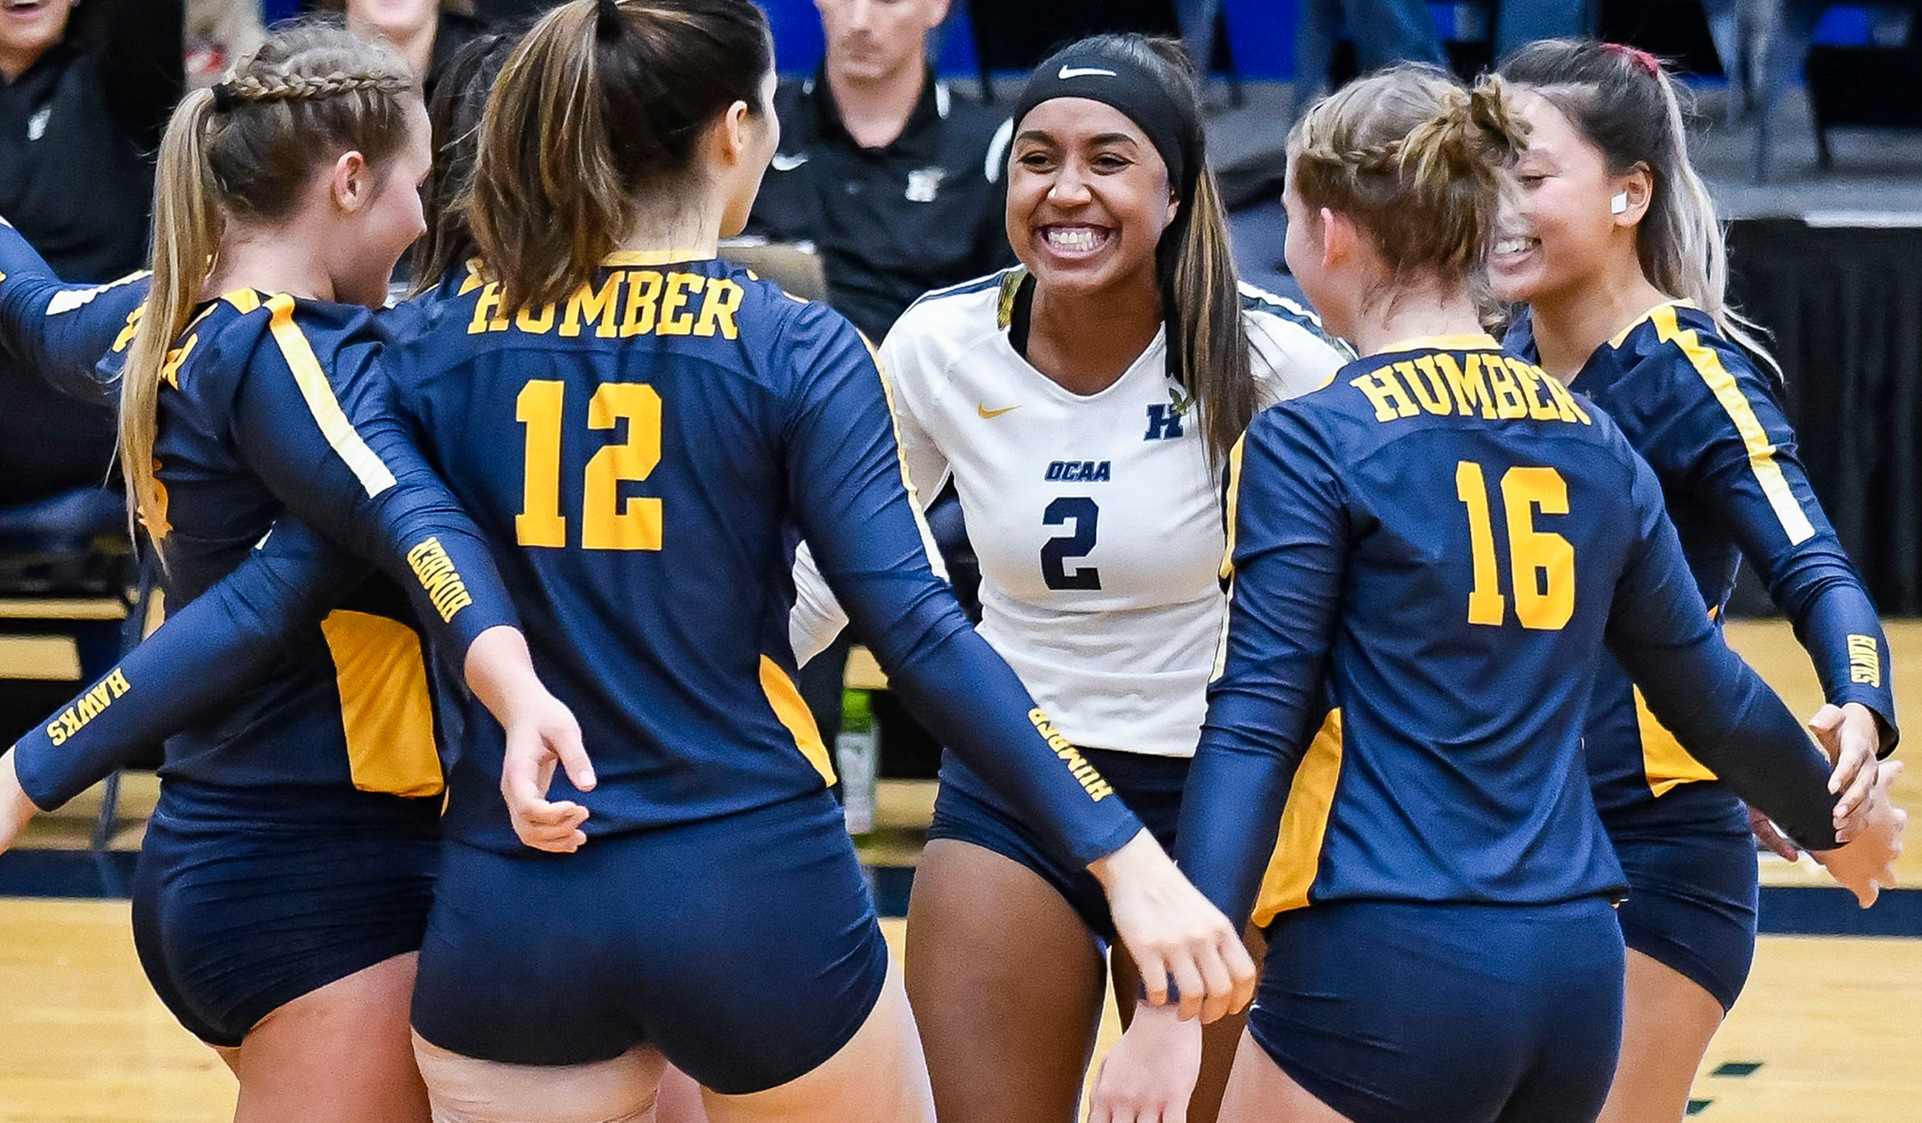 HAWKS EXPLODE AFTER TIGHT FIRST SET IN 3-0 ROAD WIN OVER SHERIDAN